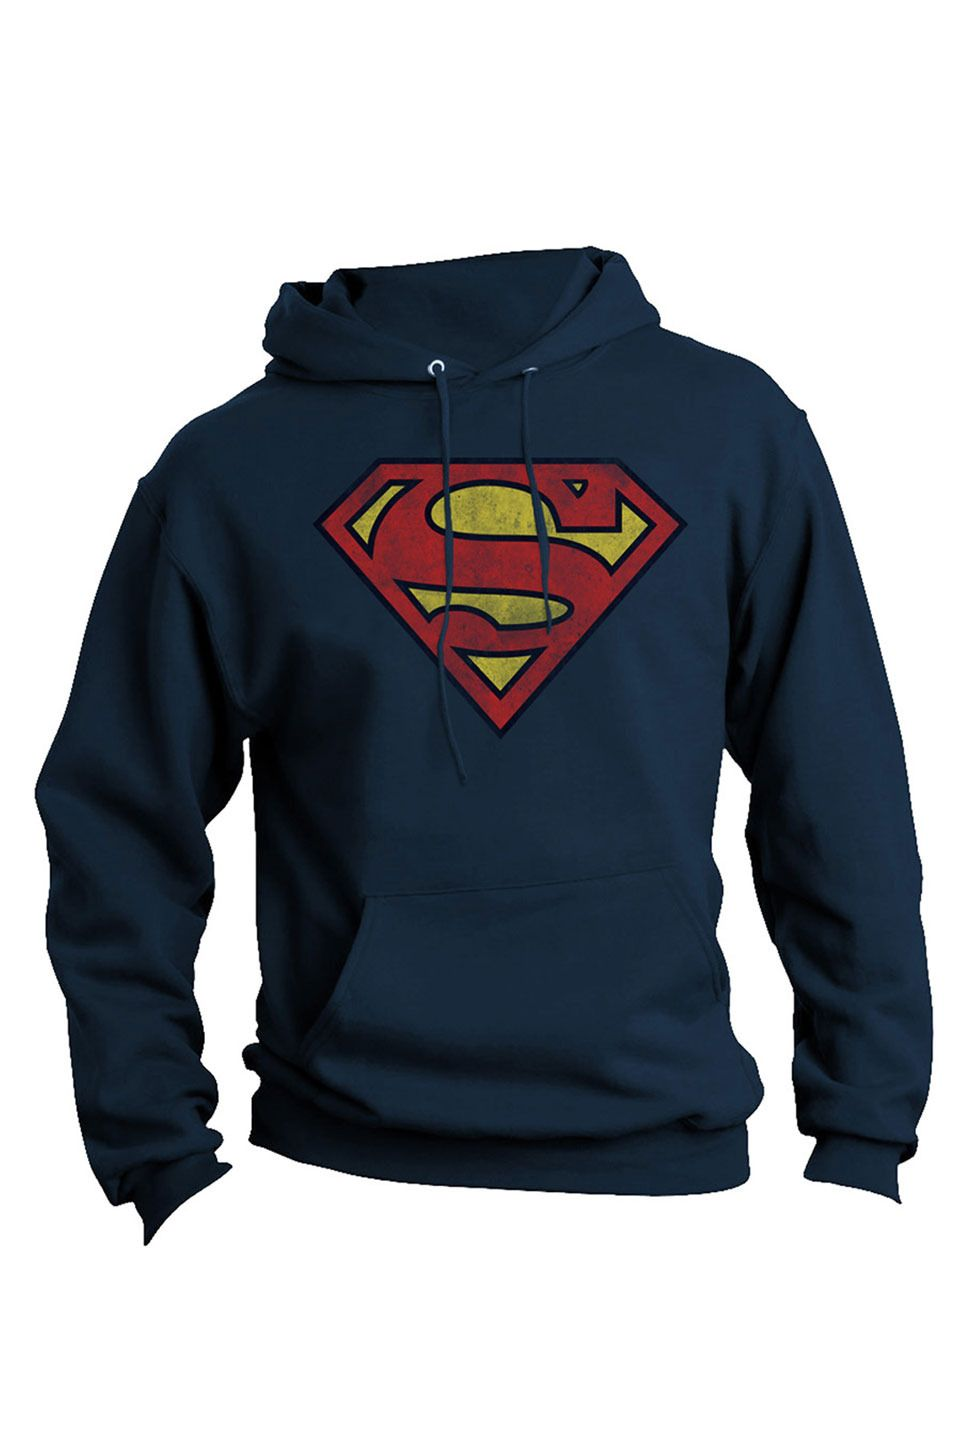 Jack Of All Trades Superman Distressed Pullover Hoodie